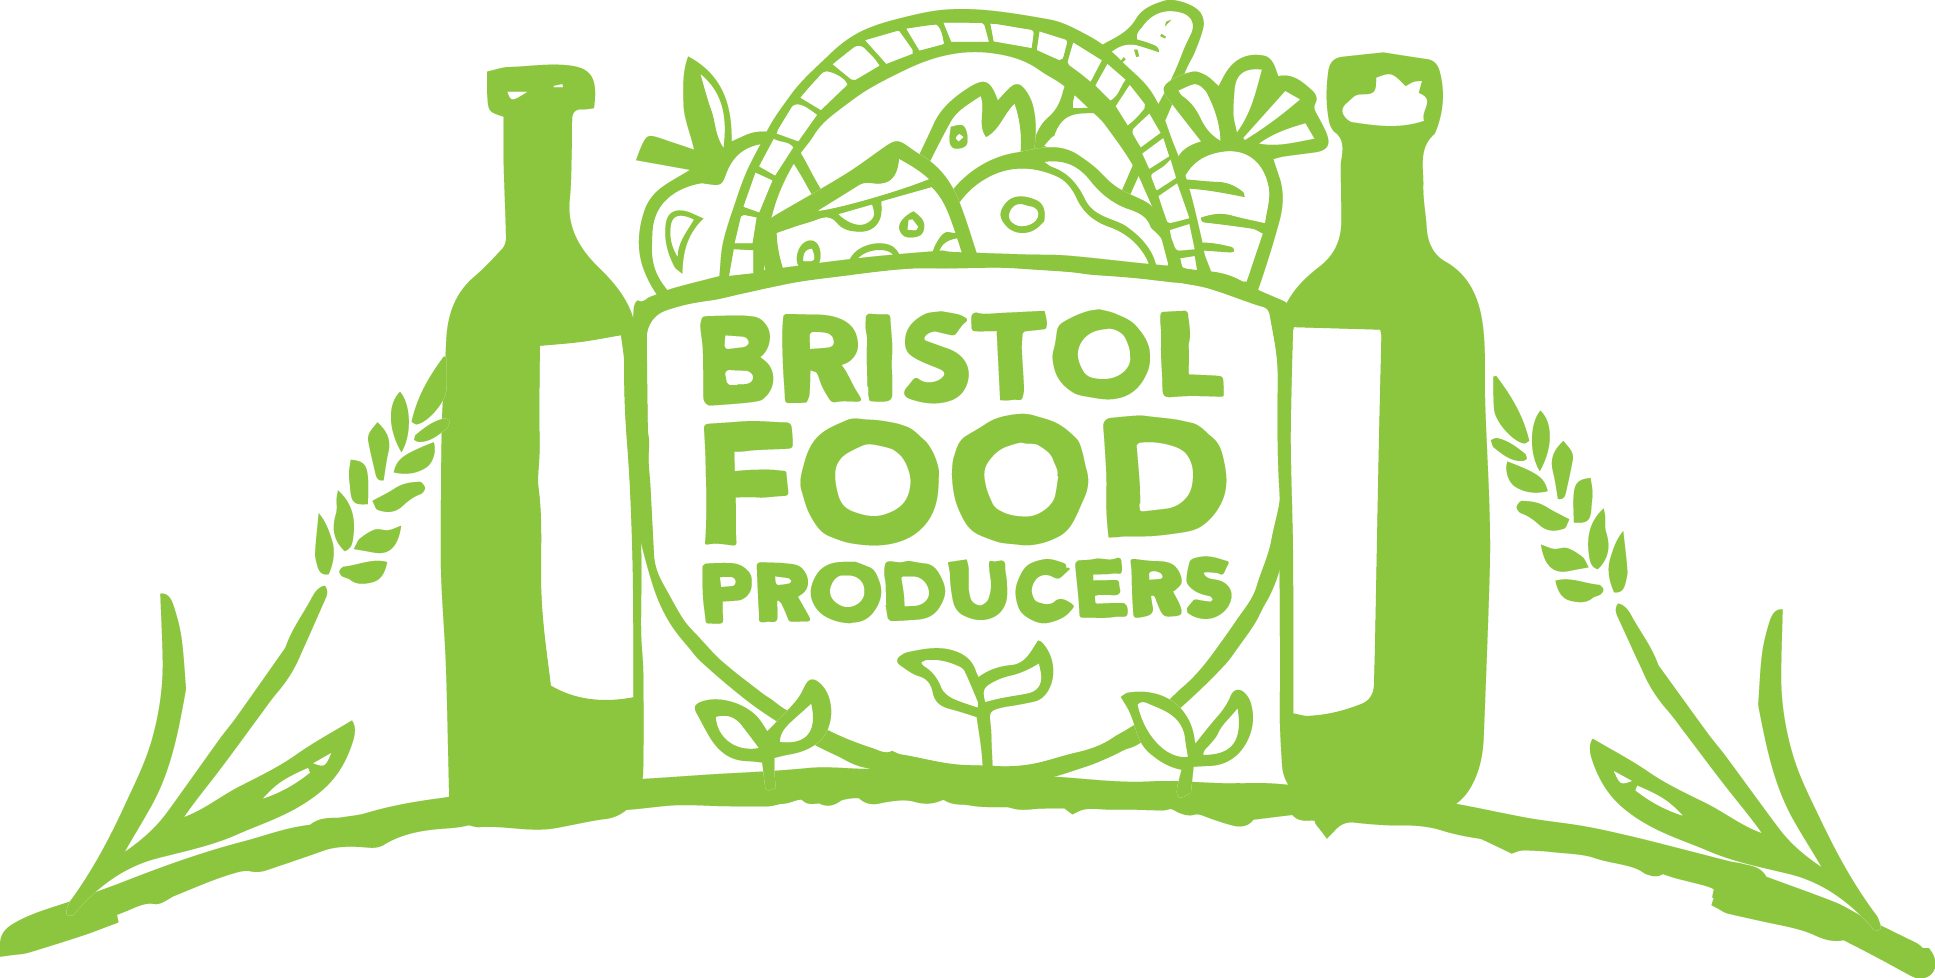 bristolfoodproducers